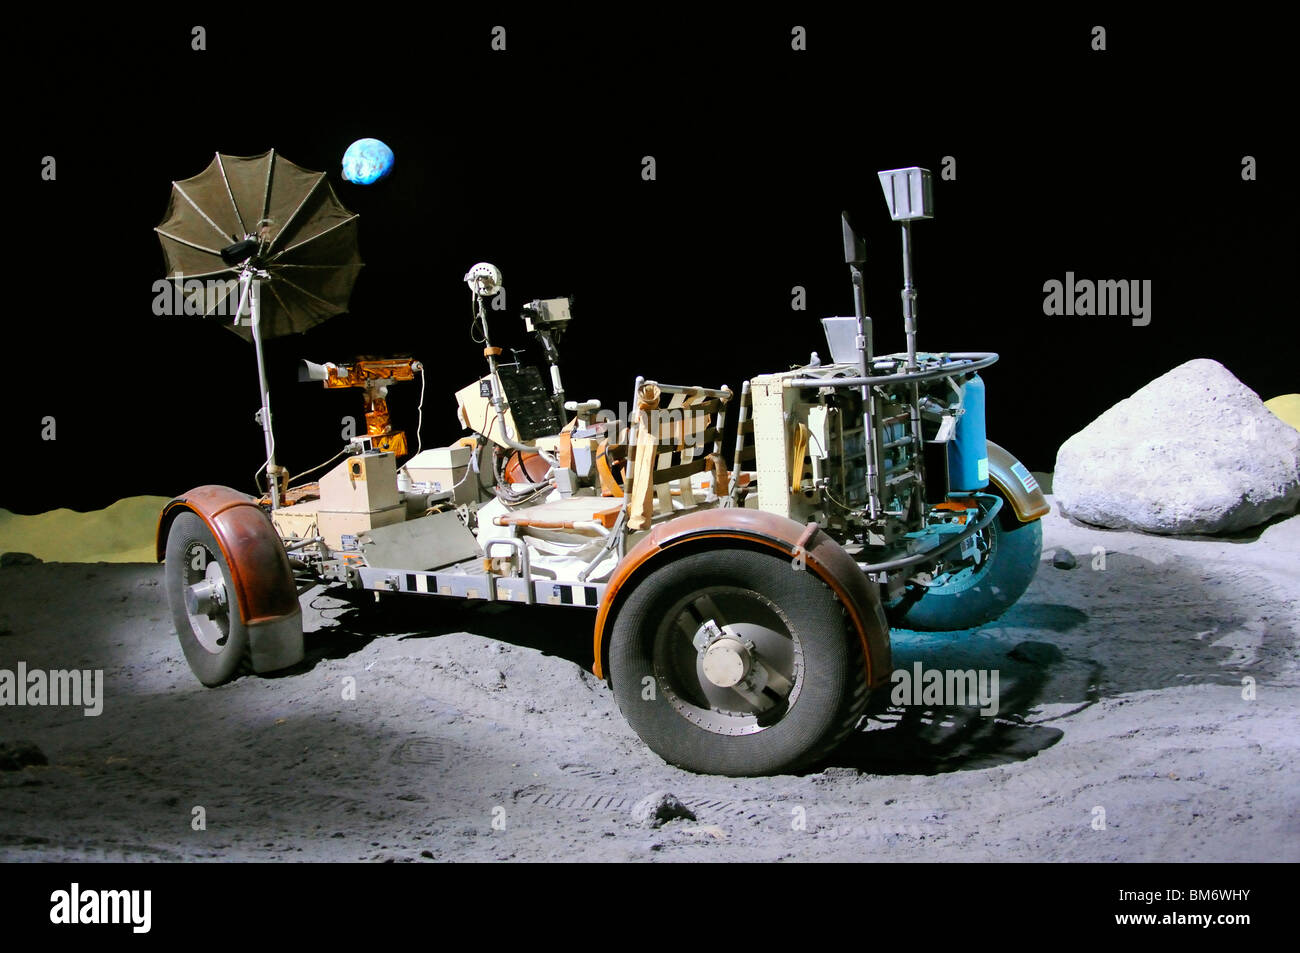 NASA Museum Houston Texas USA Stock Photo Royalty Free Image - Nasa museums in usa